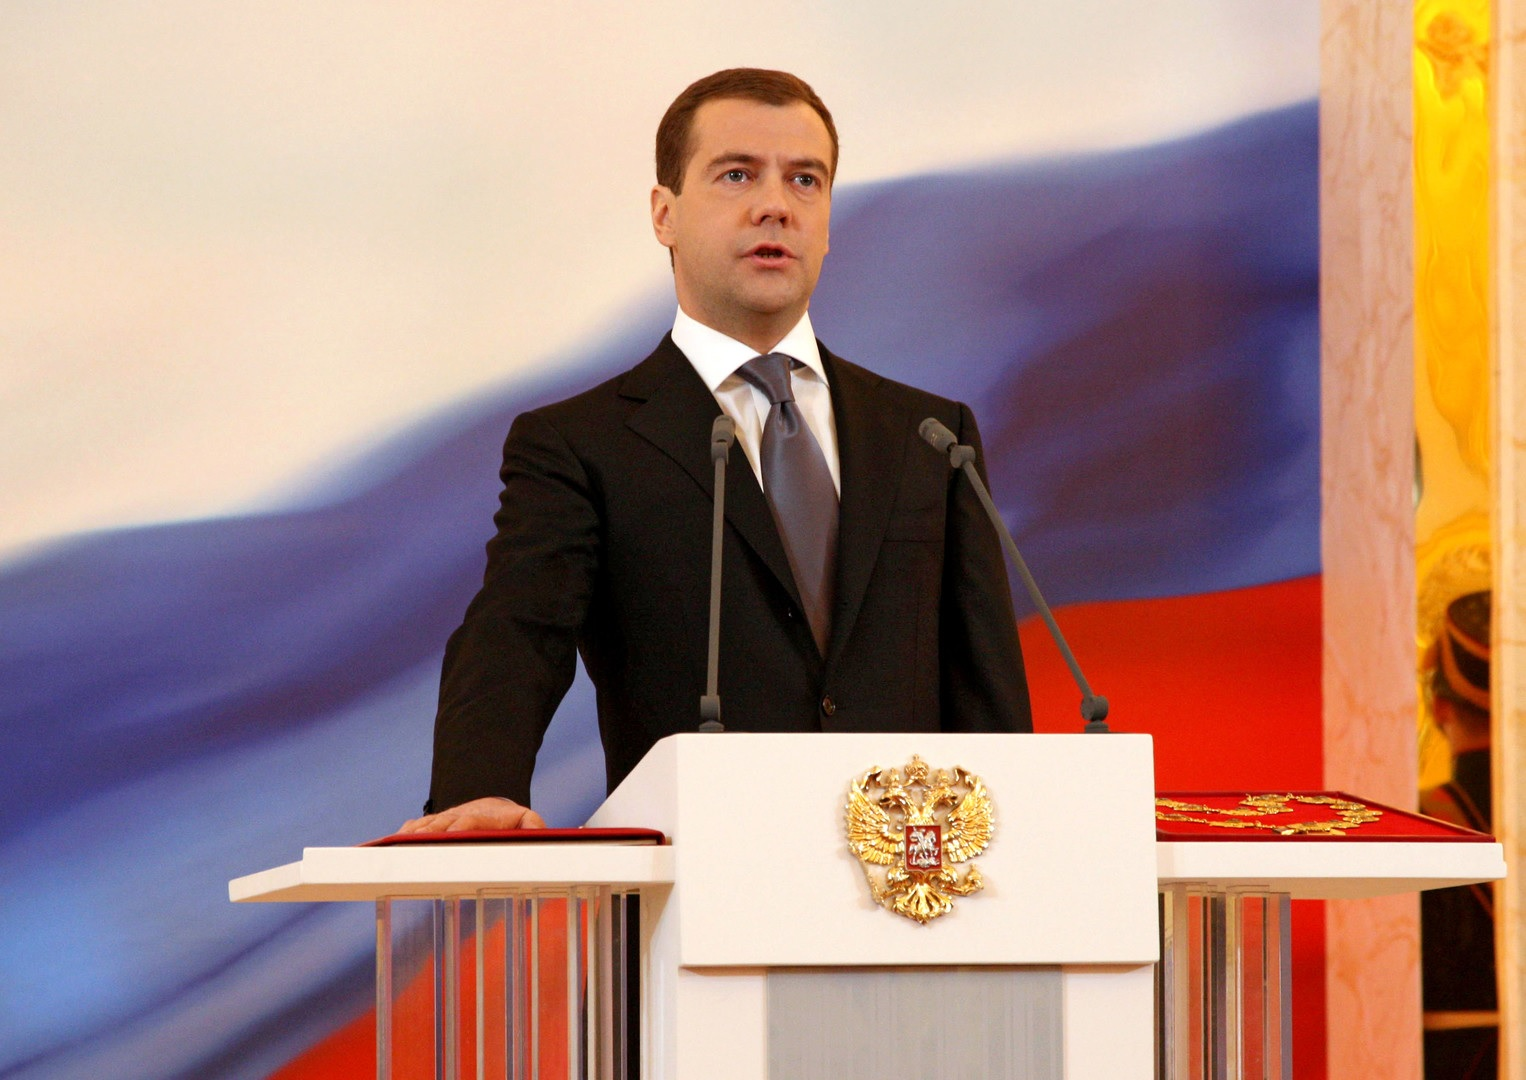 Inauguration of Dmitry Medvedev, 7 May 2008-7